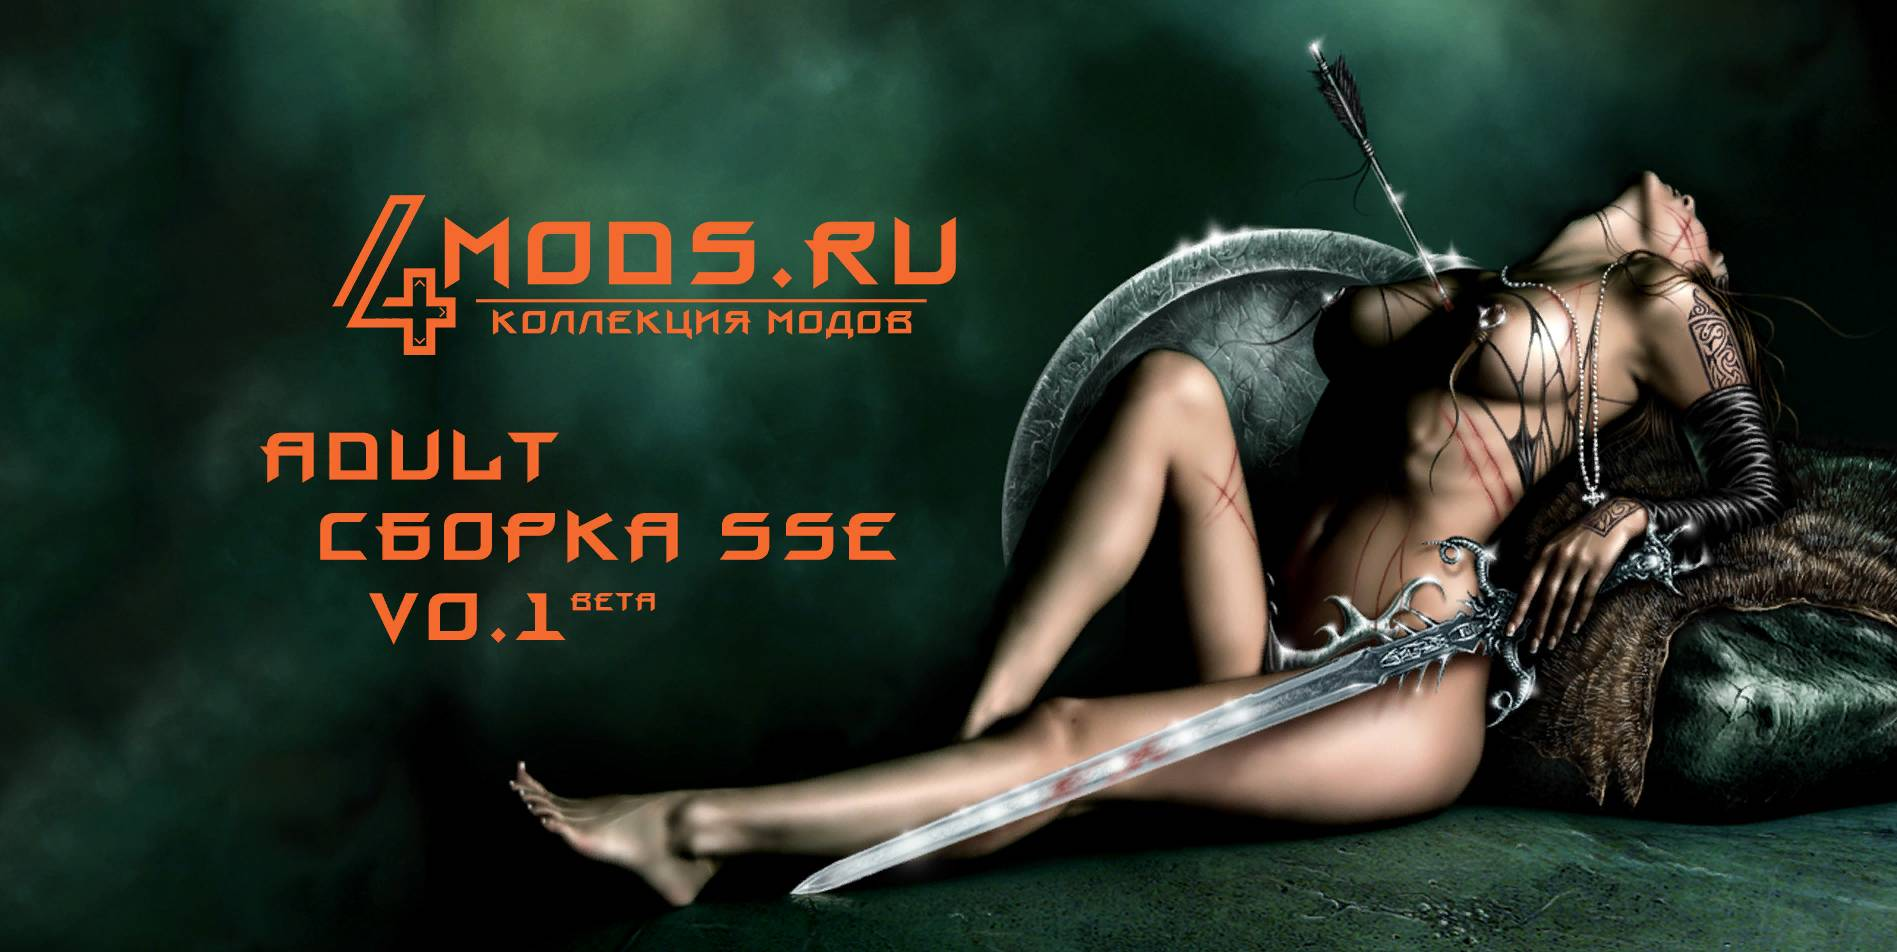 Skyrim Special Edition Секс сборка модификаций 18+